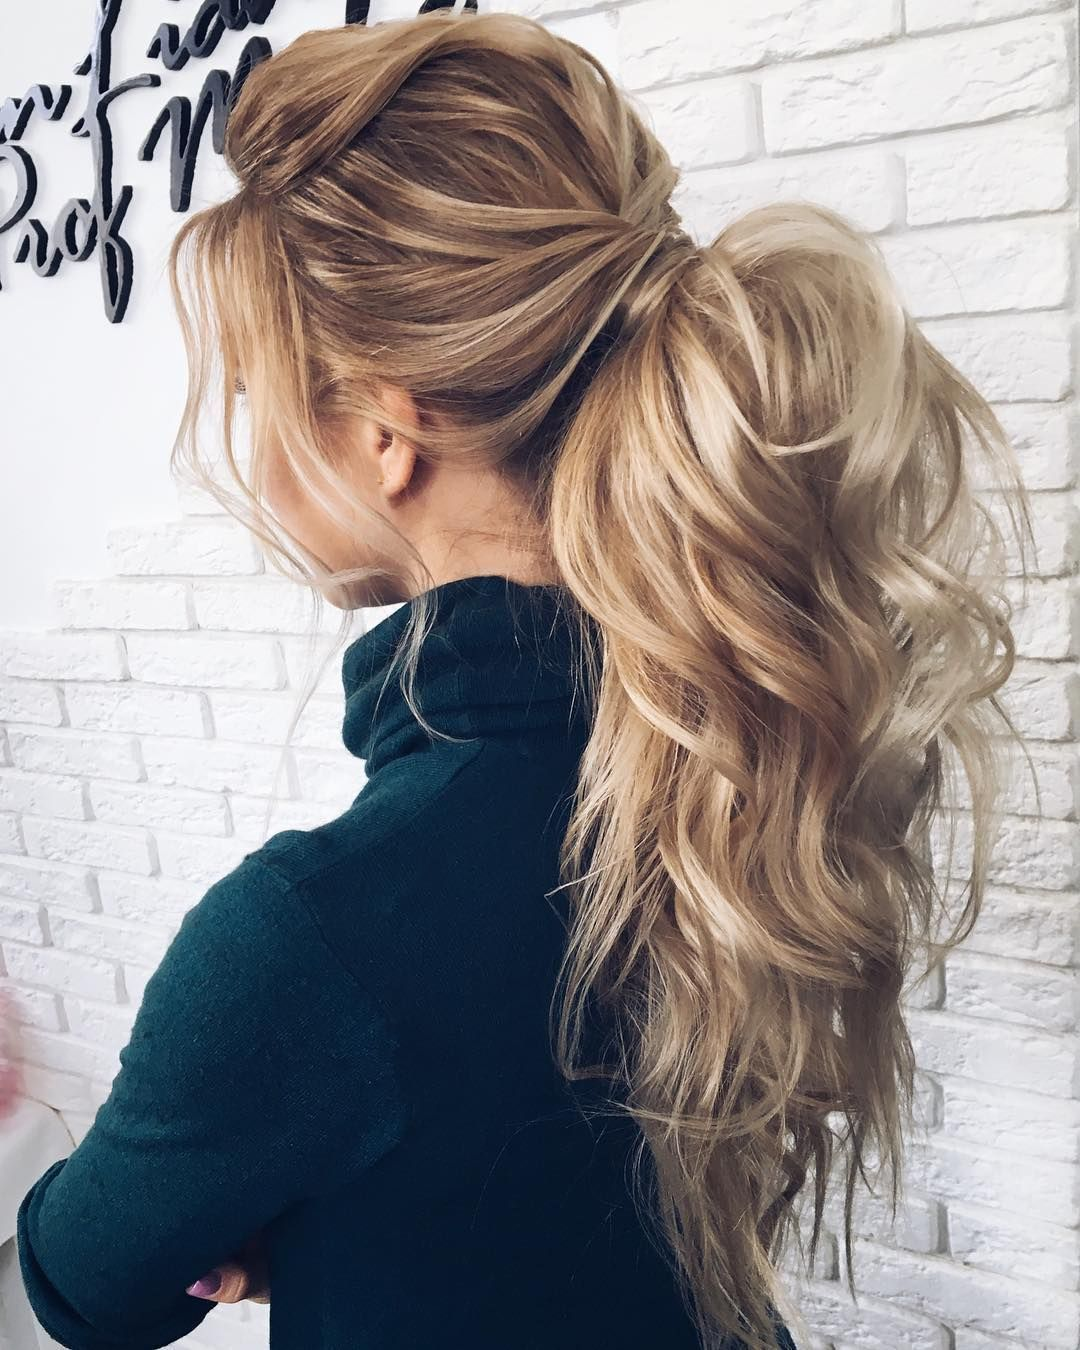 Gorgeous Ponytail Hairstyle Ideas That Will Leave You In FAB - ponytail wedding hairstyles #weddinghair #wedding #hairstyles #ponytail #bridehair #weddinghairstyles #ponytailhairstyles